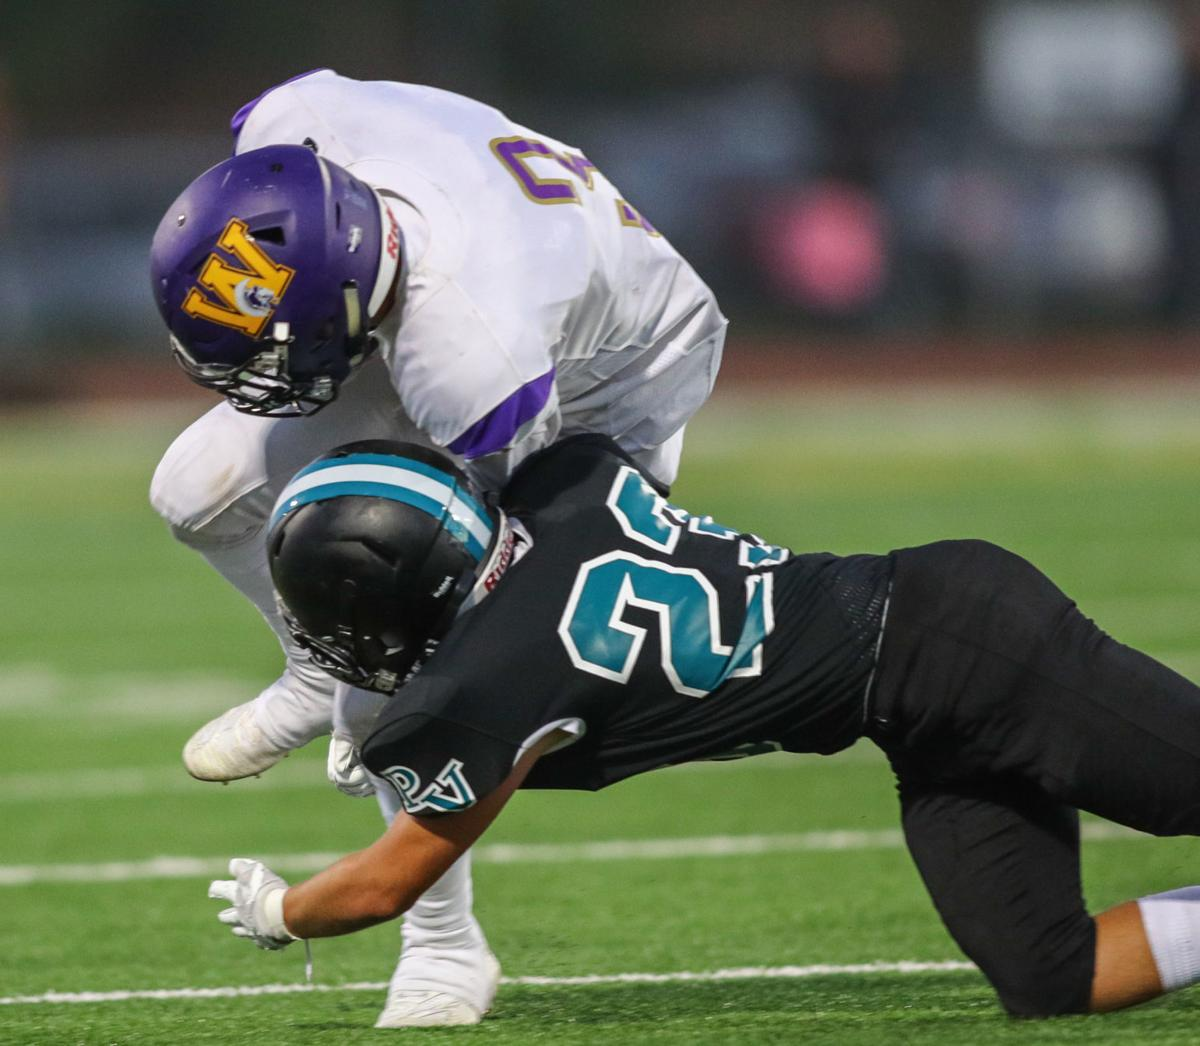 090619 FB Pioneer vs Righetti 17.jpg